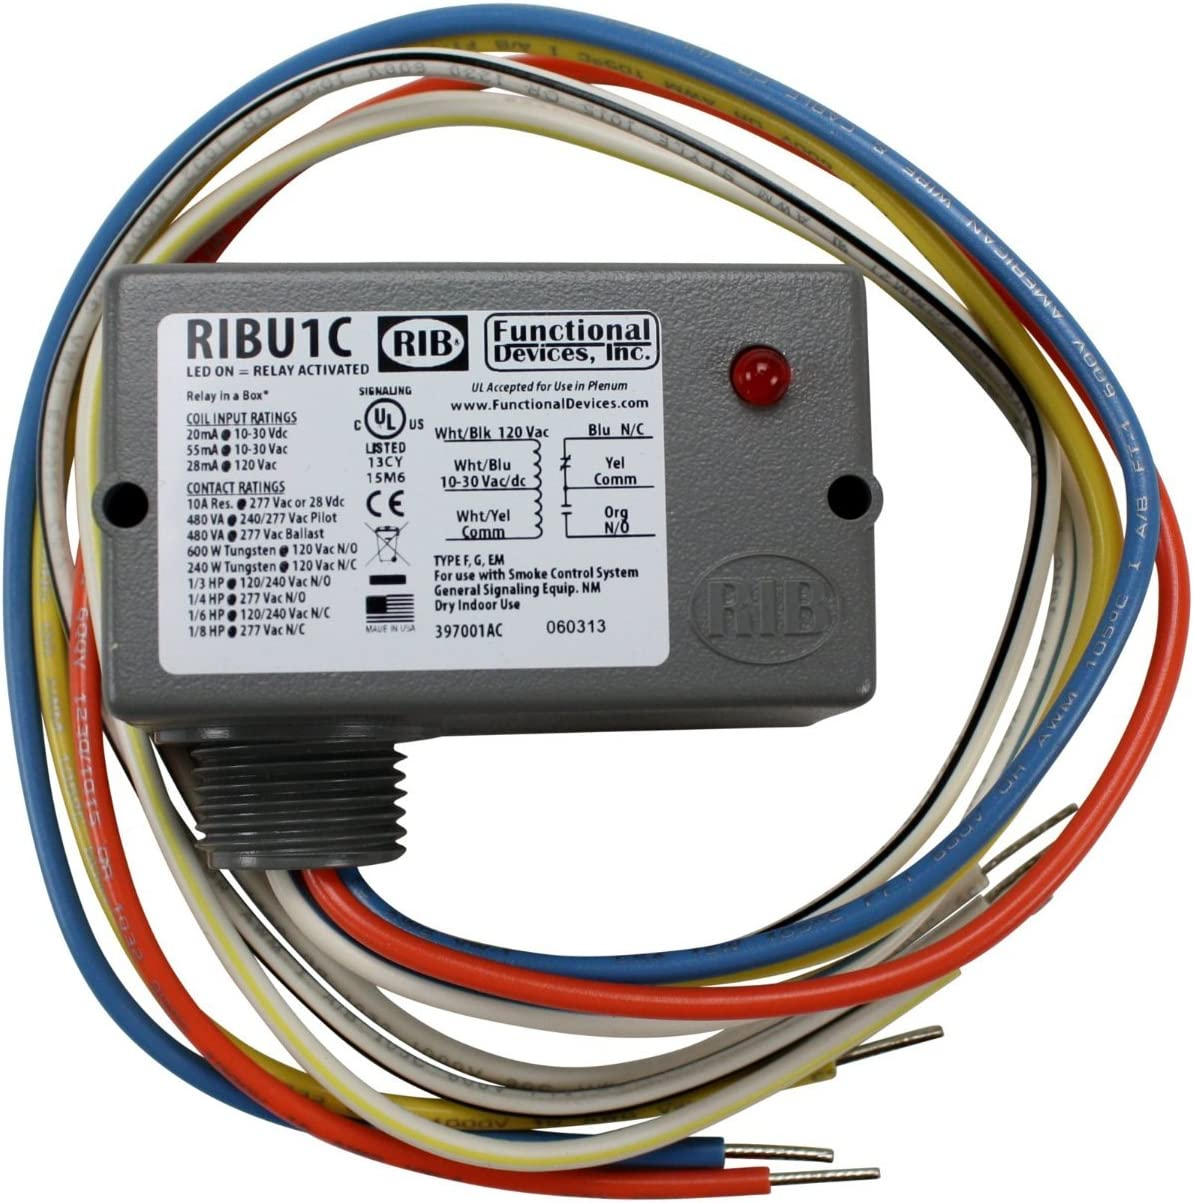 120V 10AMP SPDT Functional Devices RIBU1C DC Enclosed Pilot Relay 10-30Vac